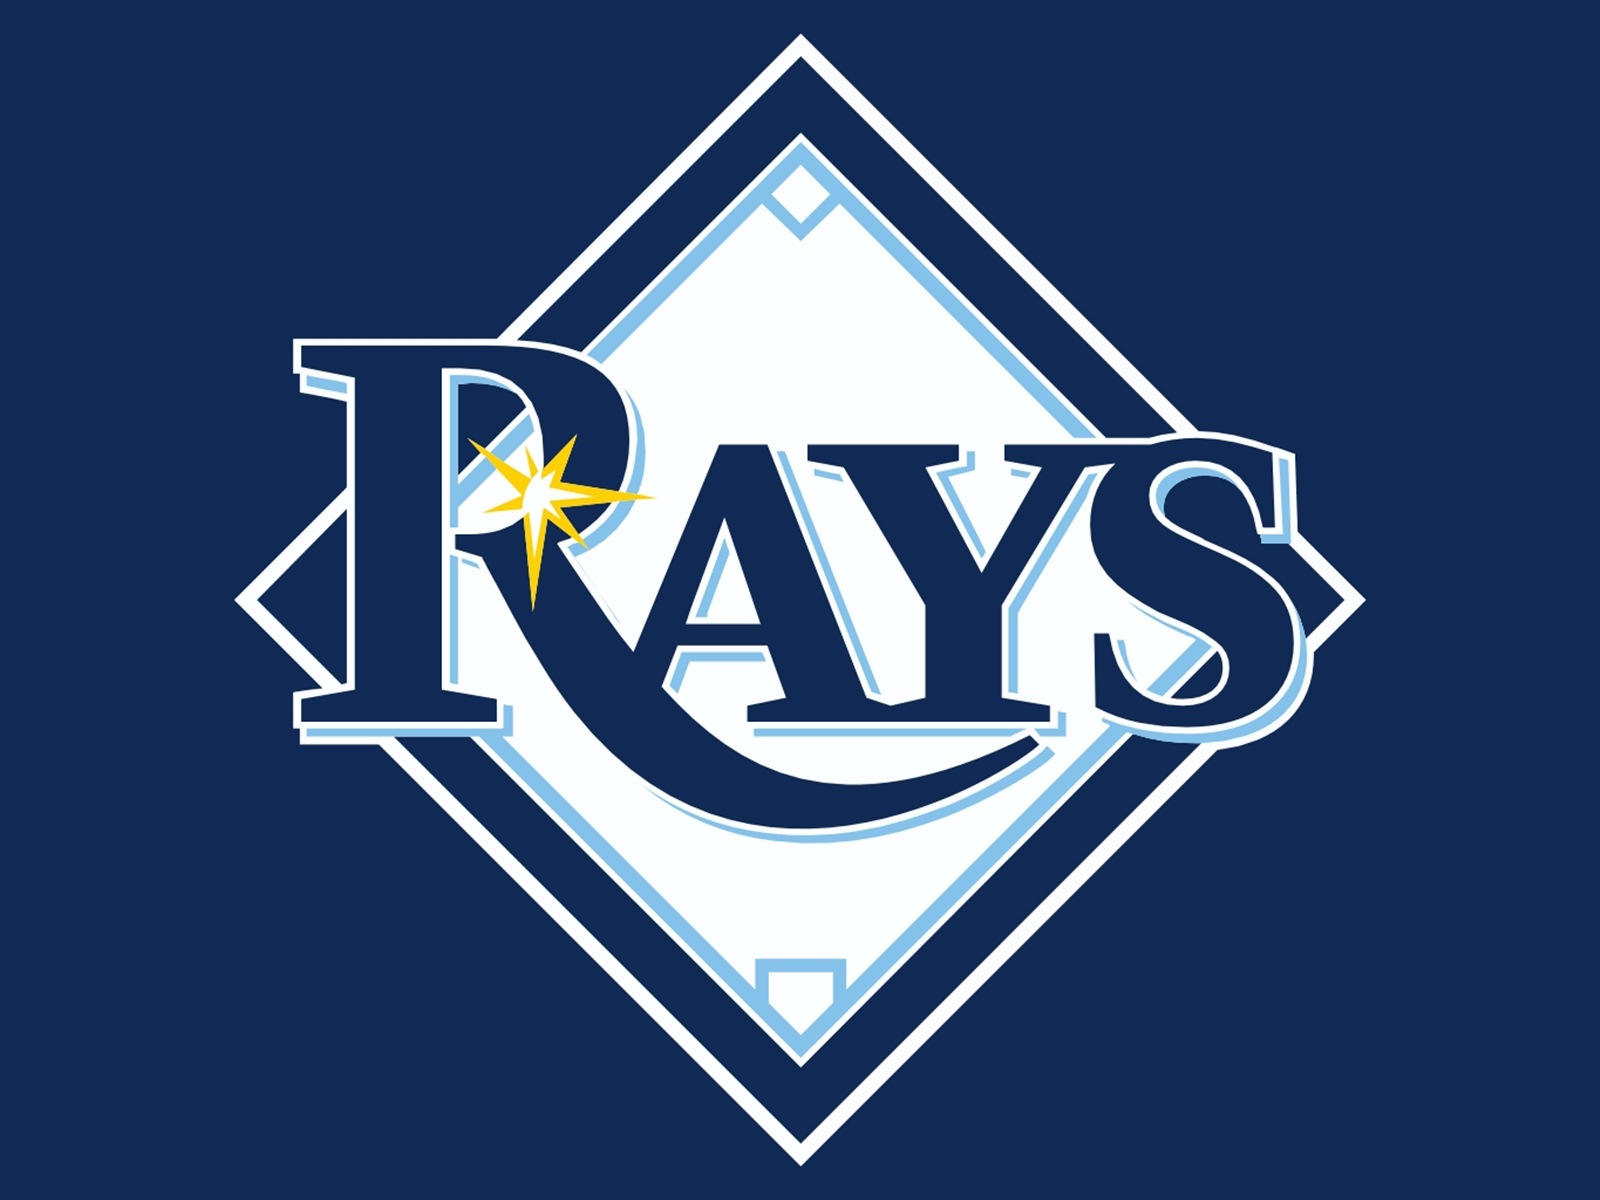 Tampa Bay Rays Logo Wallpaper